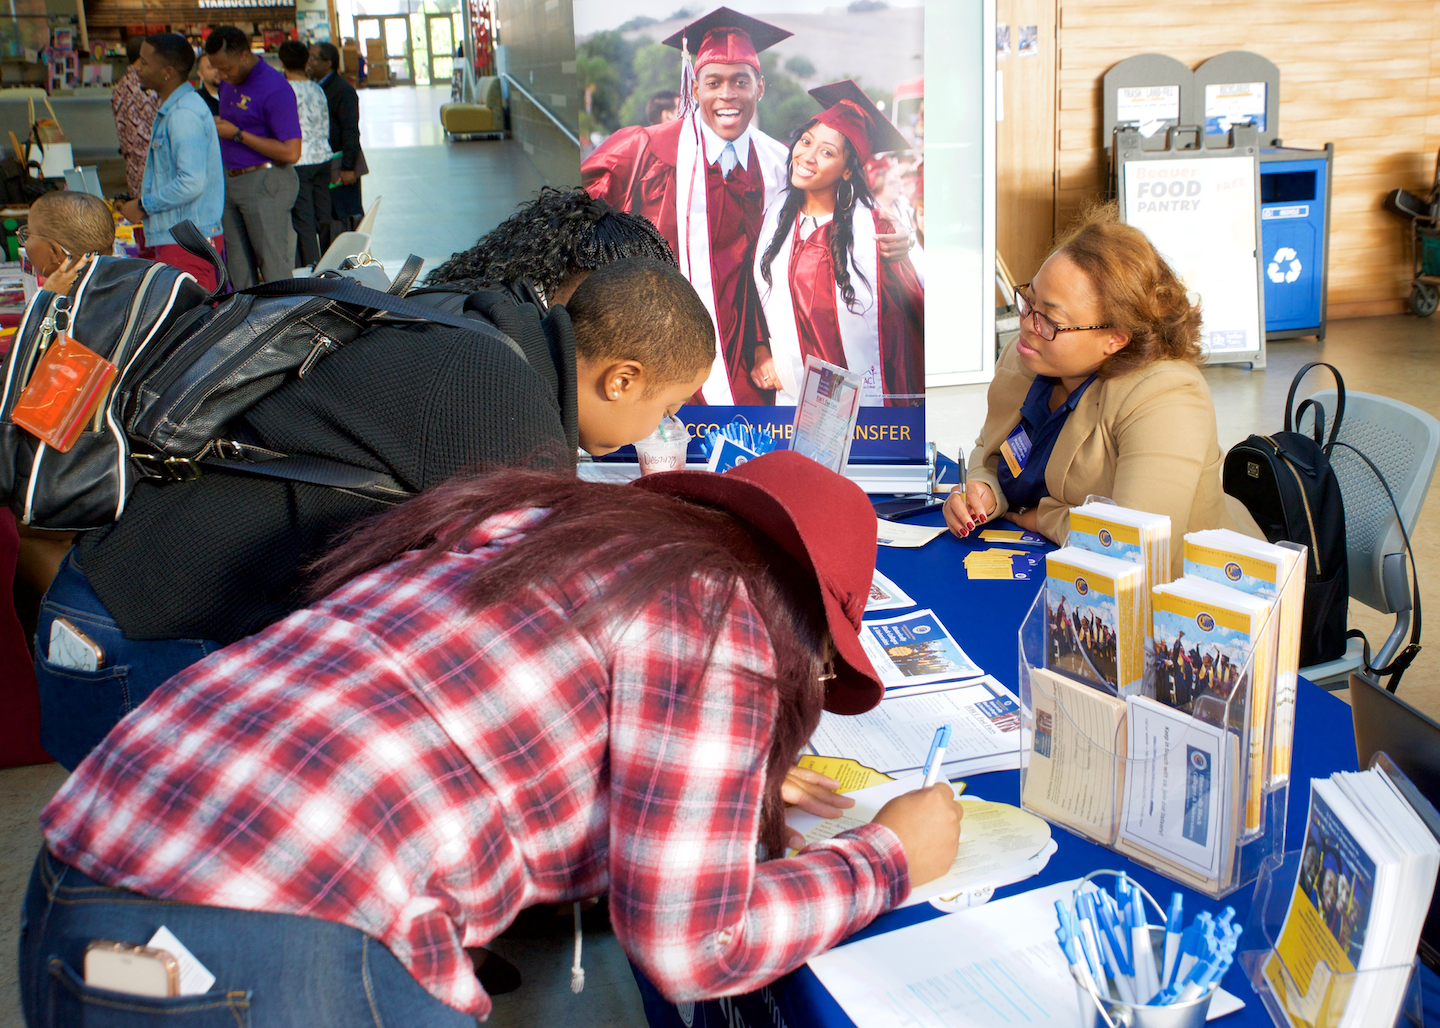 Students meet with HBCU representatives at a career fair. Each fall, California Community Colleges and HBCUs partner for a road trip up and down California's coast to spread the word about their opportunities.